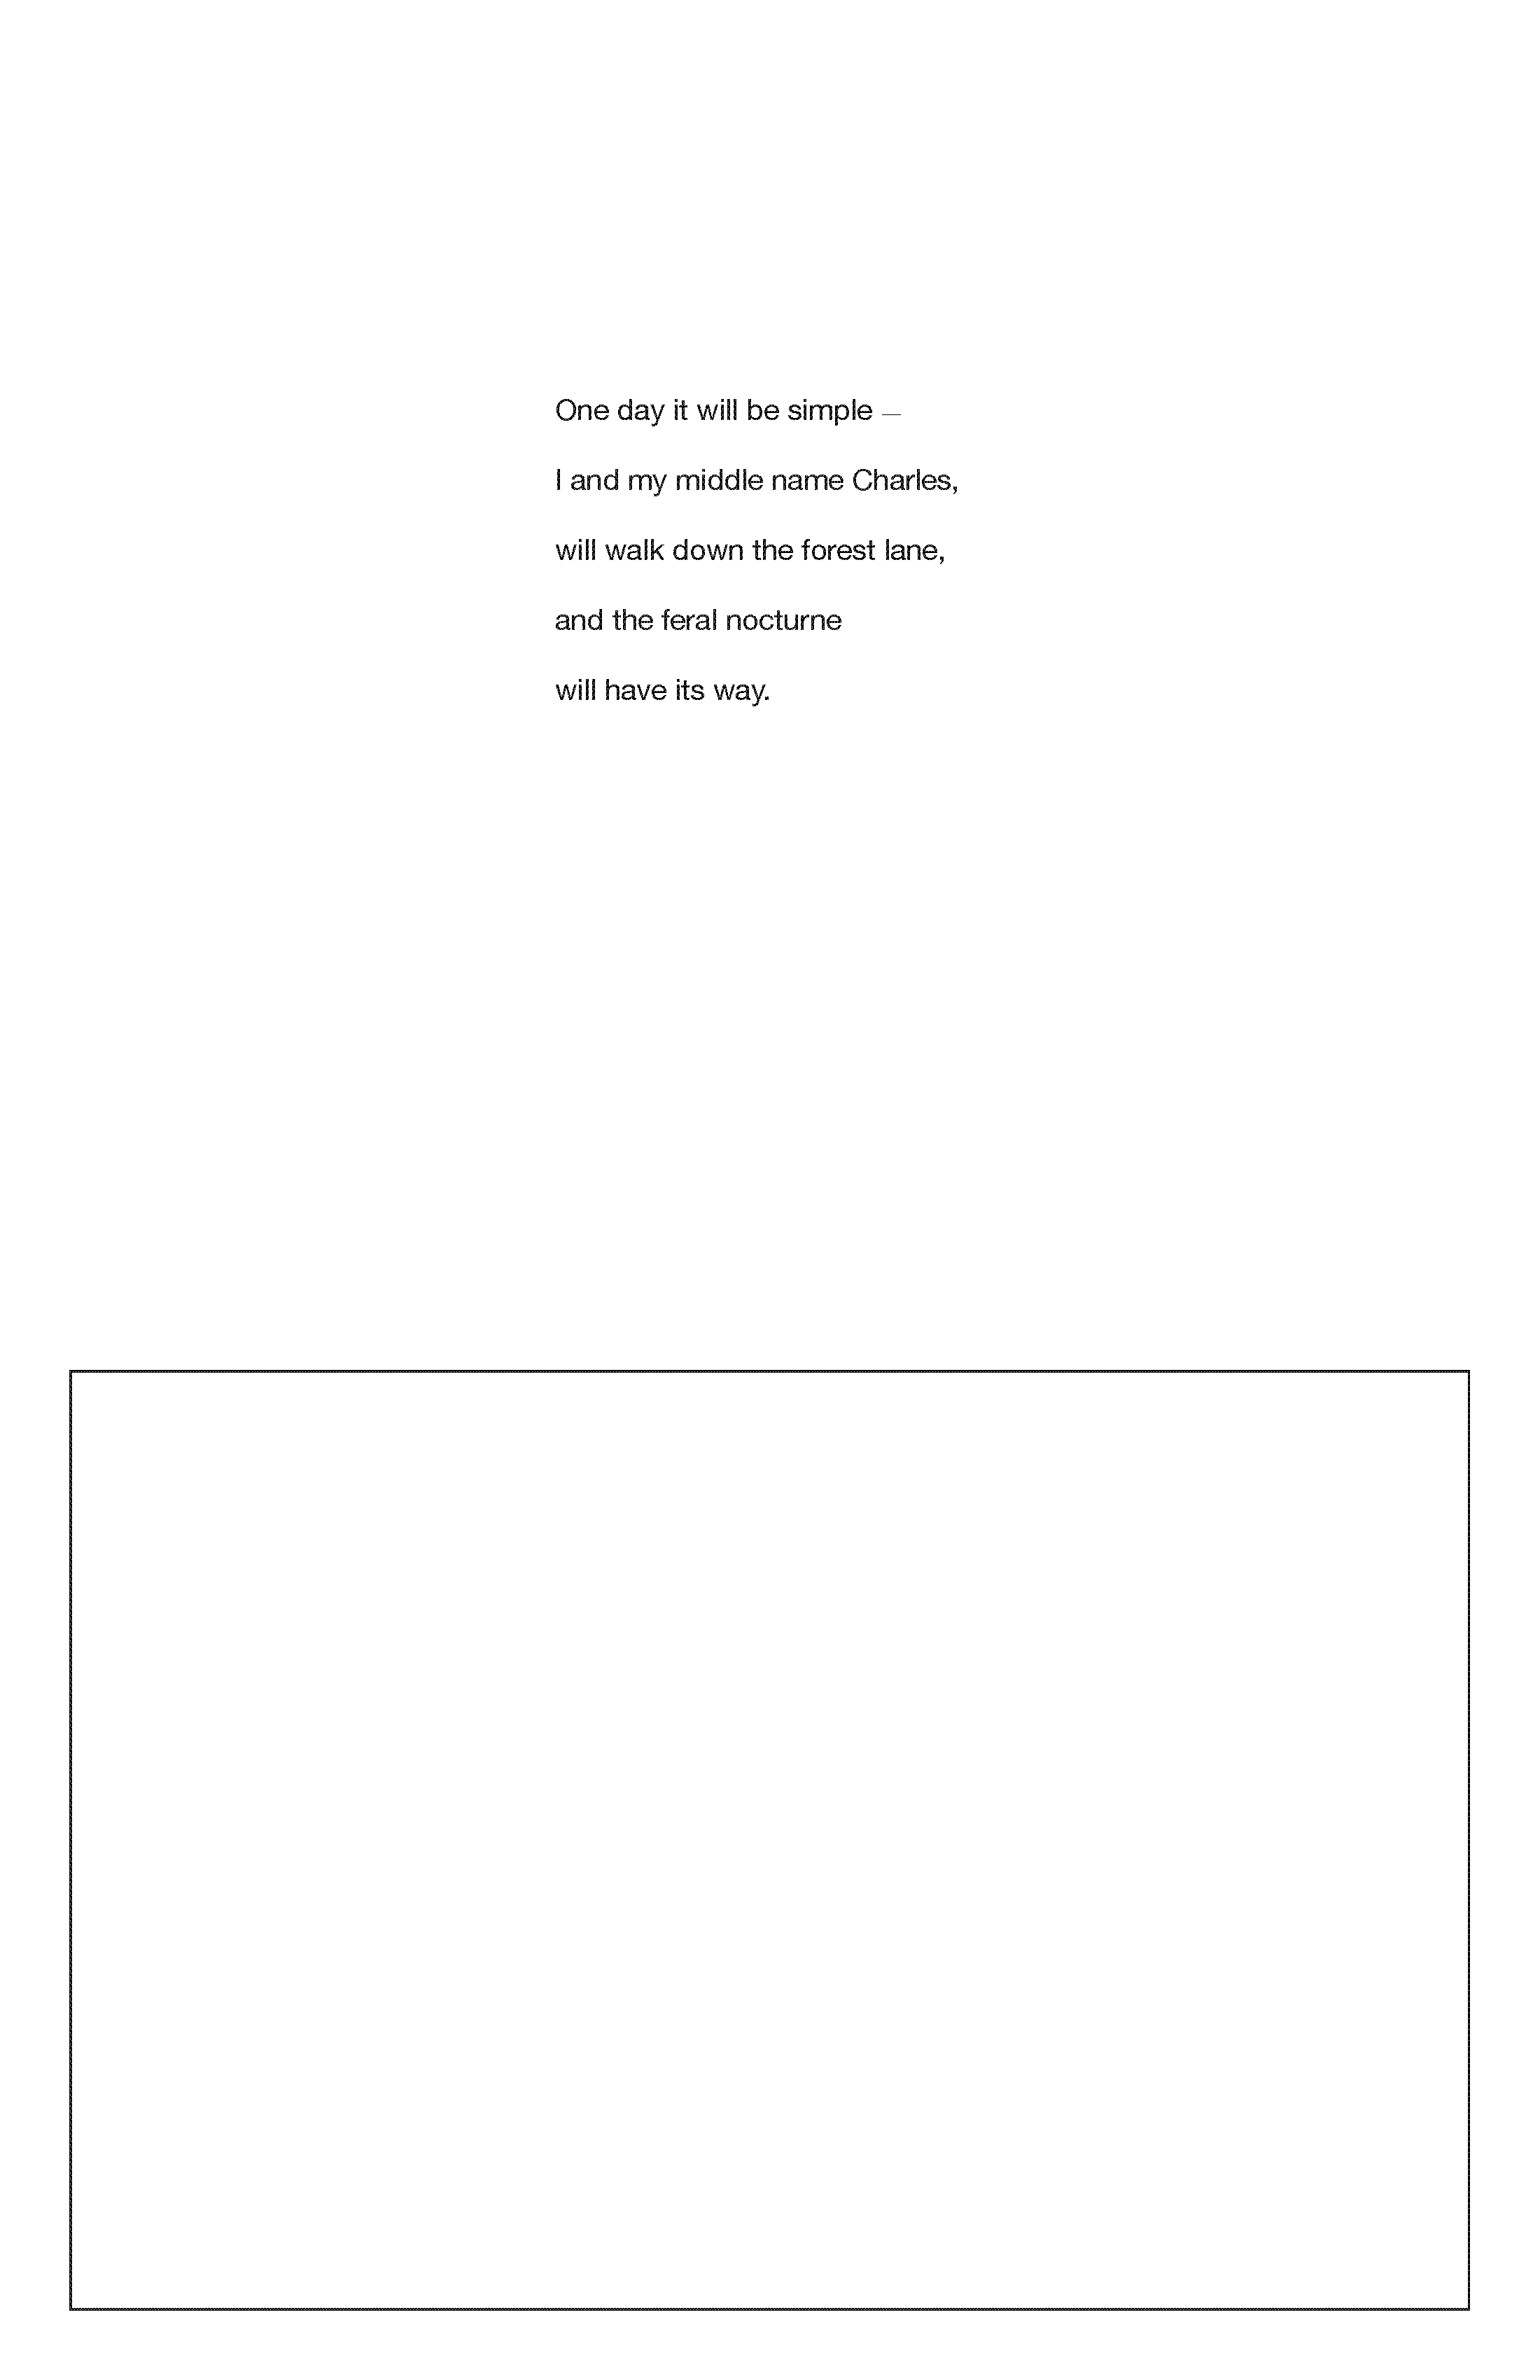 Slow_BA_1_Page_06.png